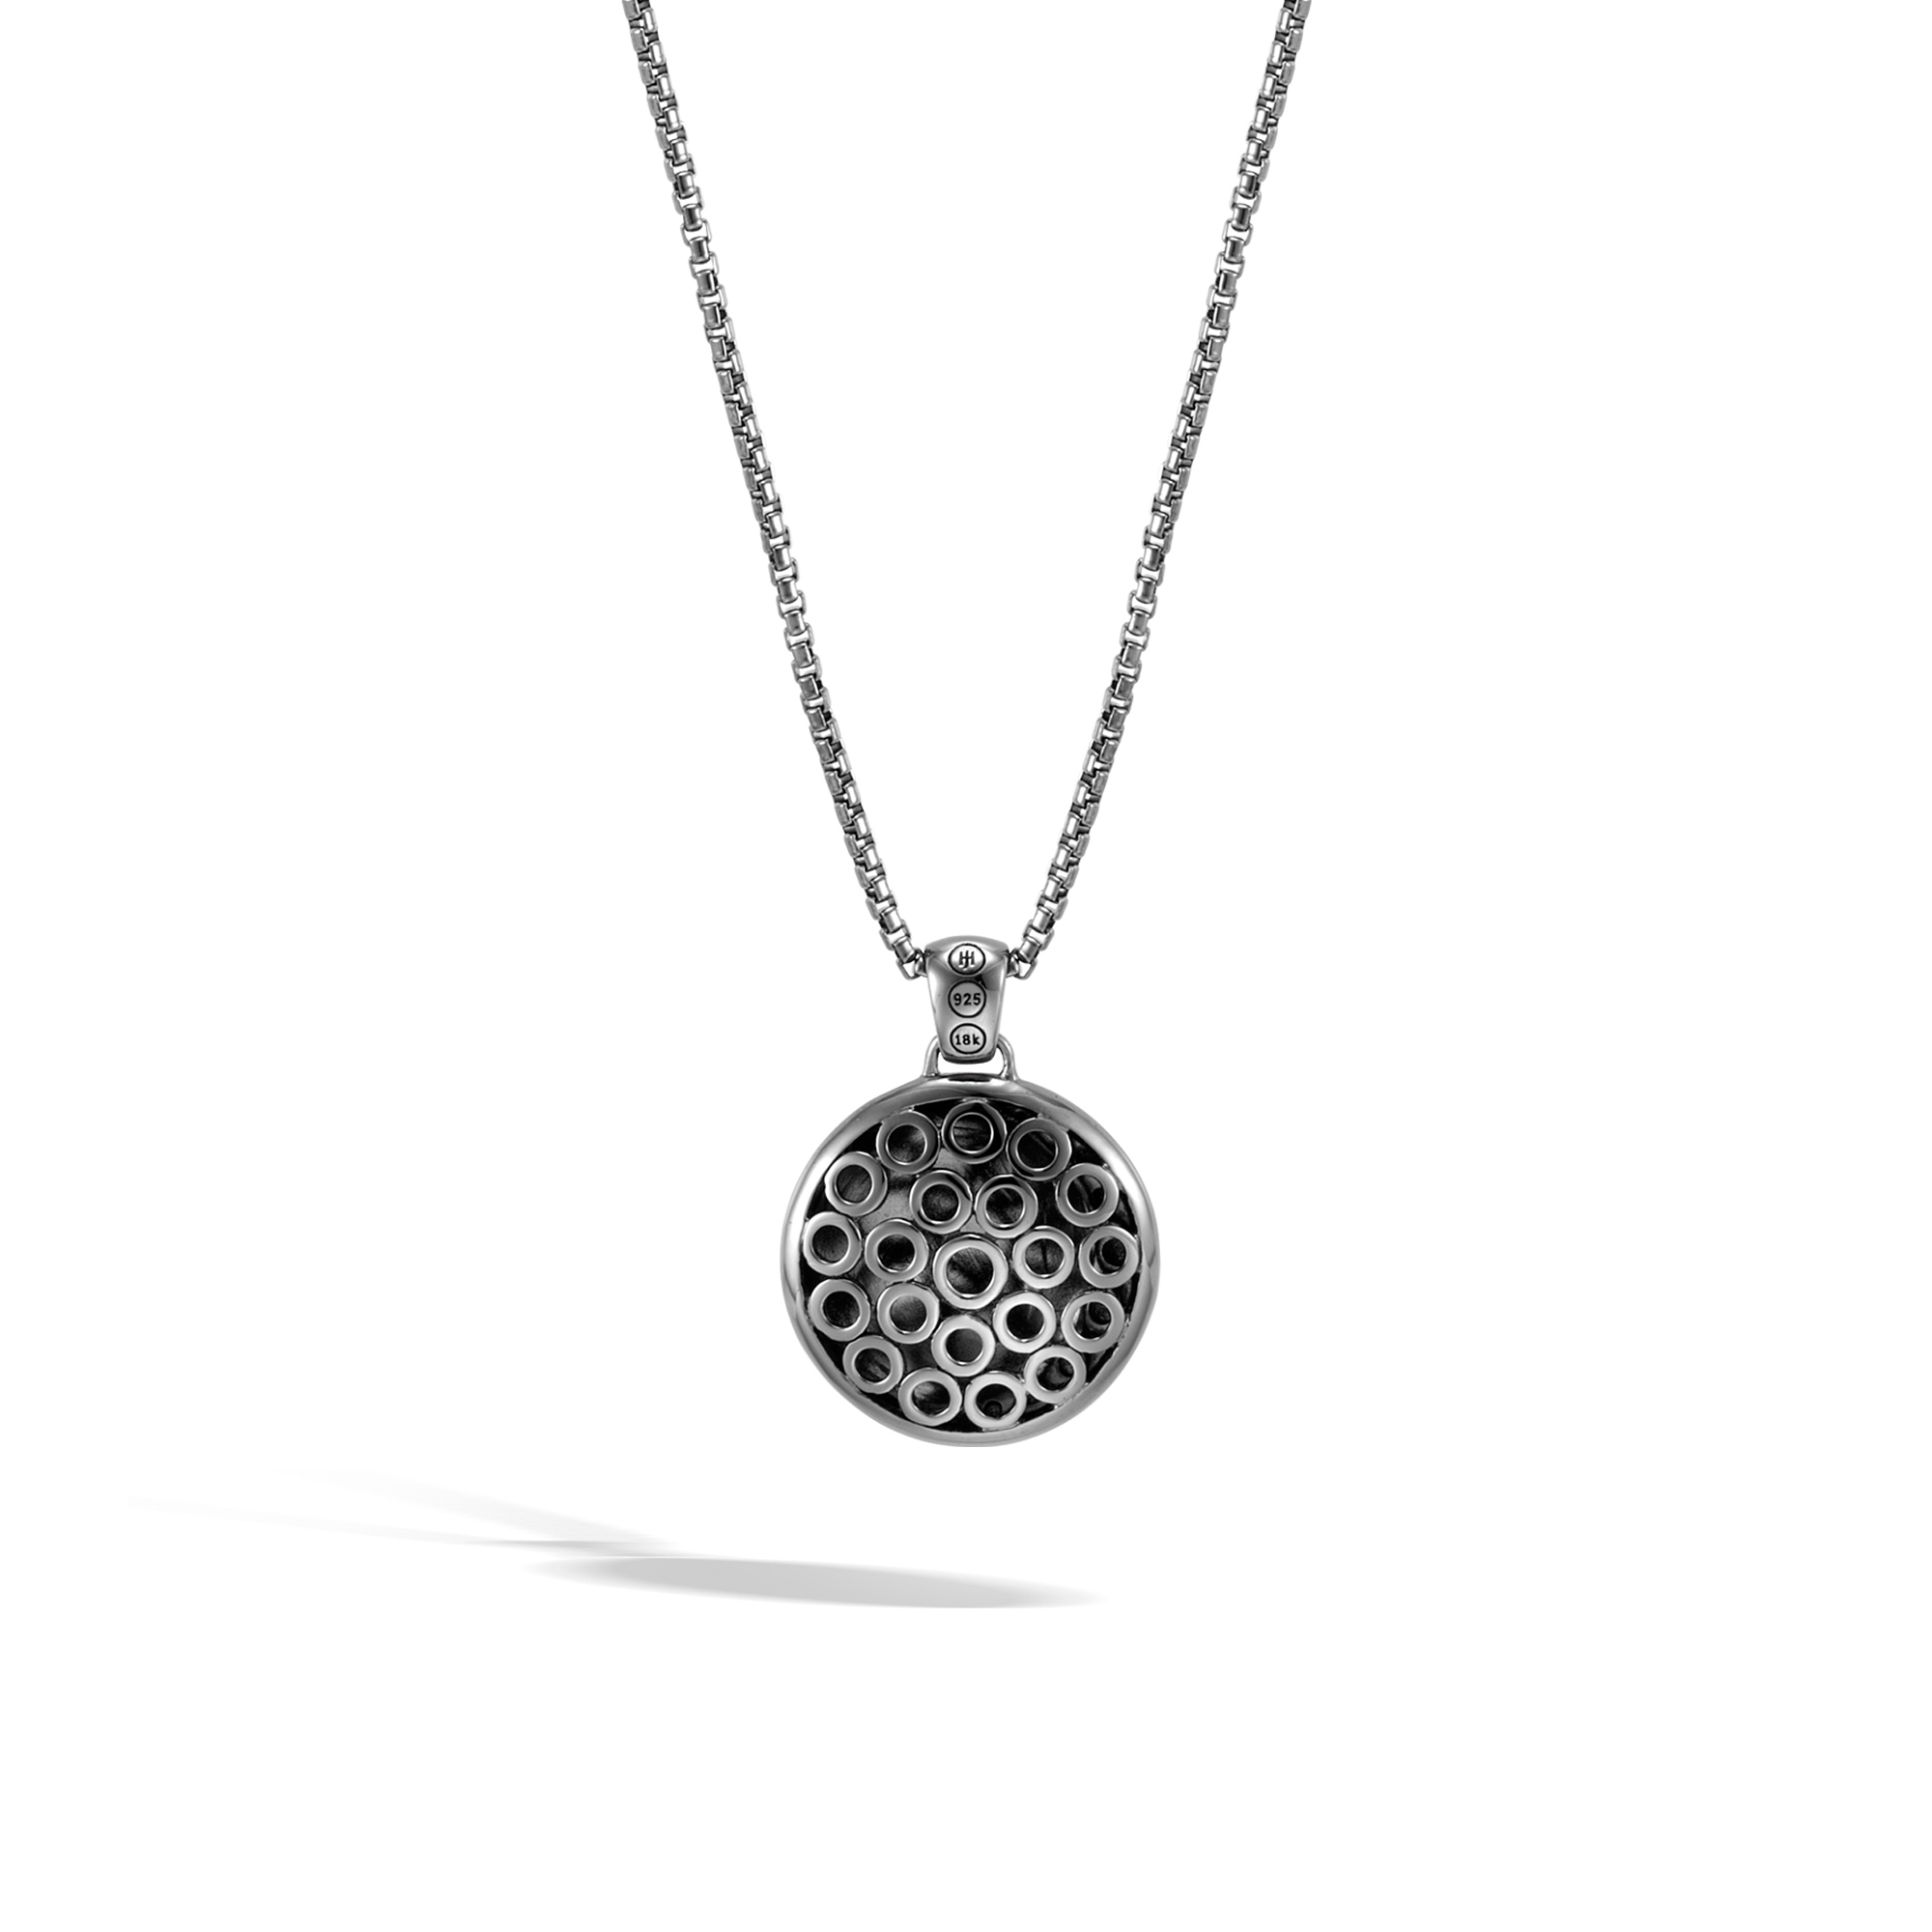 Dot Moon Phase Pendant Necklace, Black Hammered Silver, 18K , , large